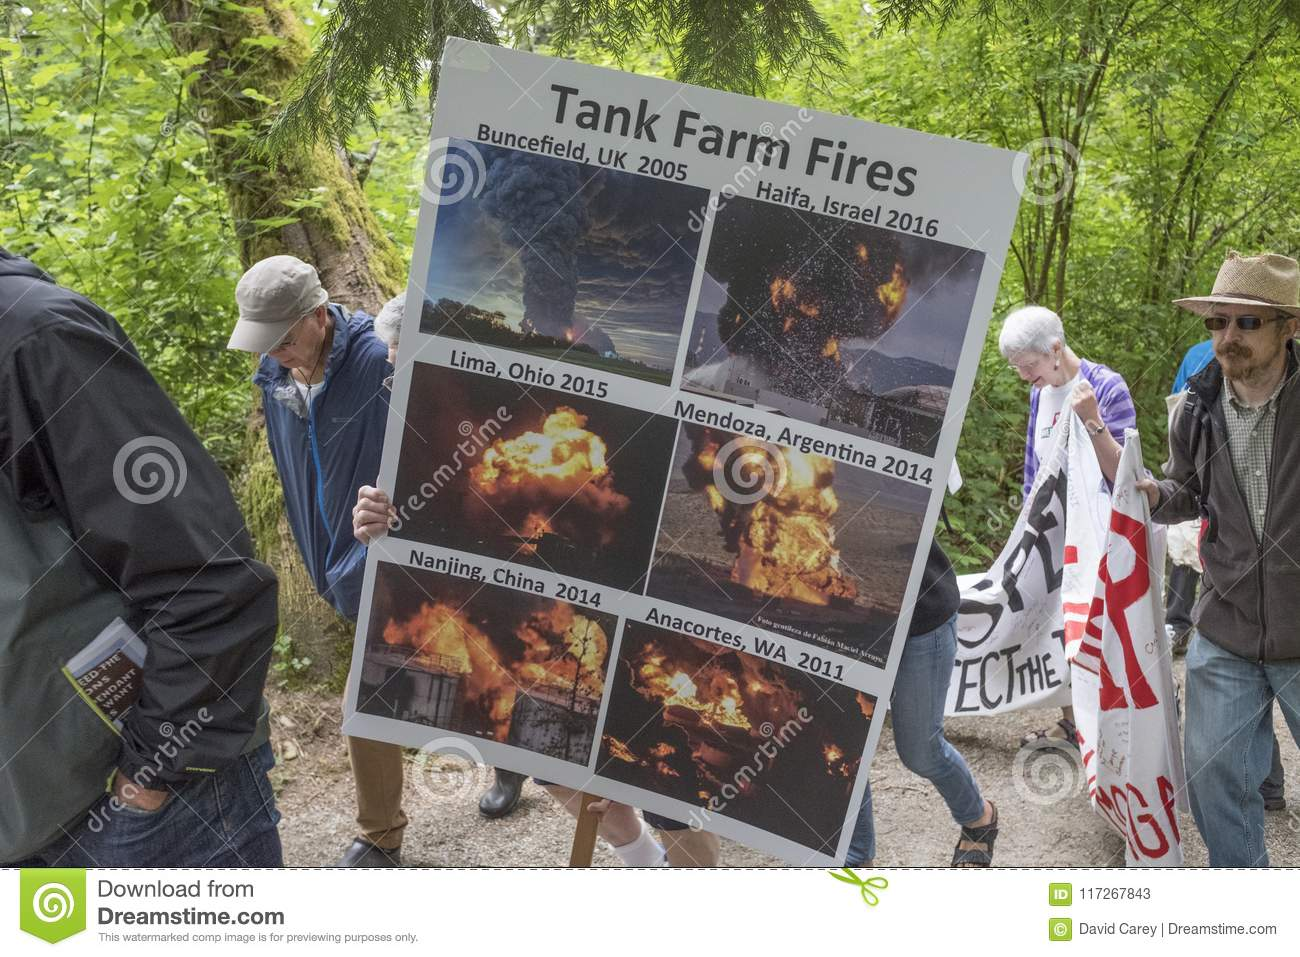 At the Kinder Morgan protest, protesters hold up a poster showing previous tank farm fires